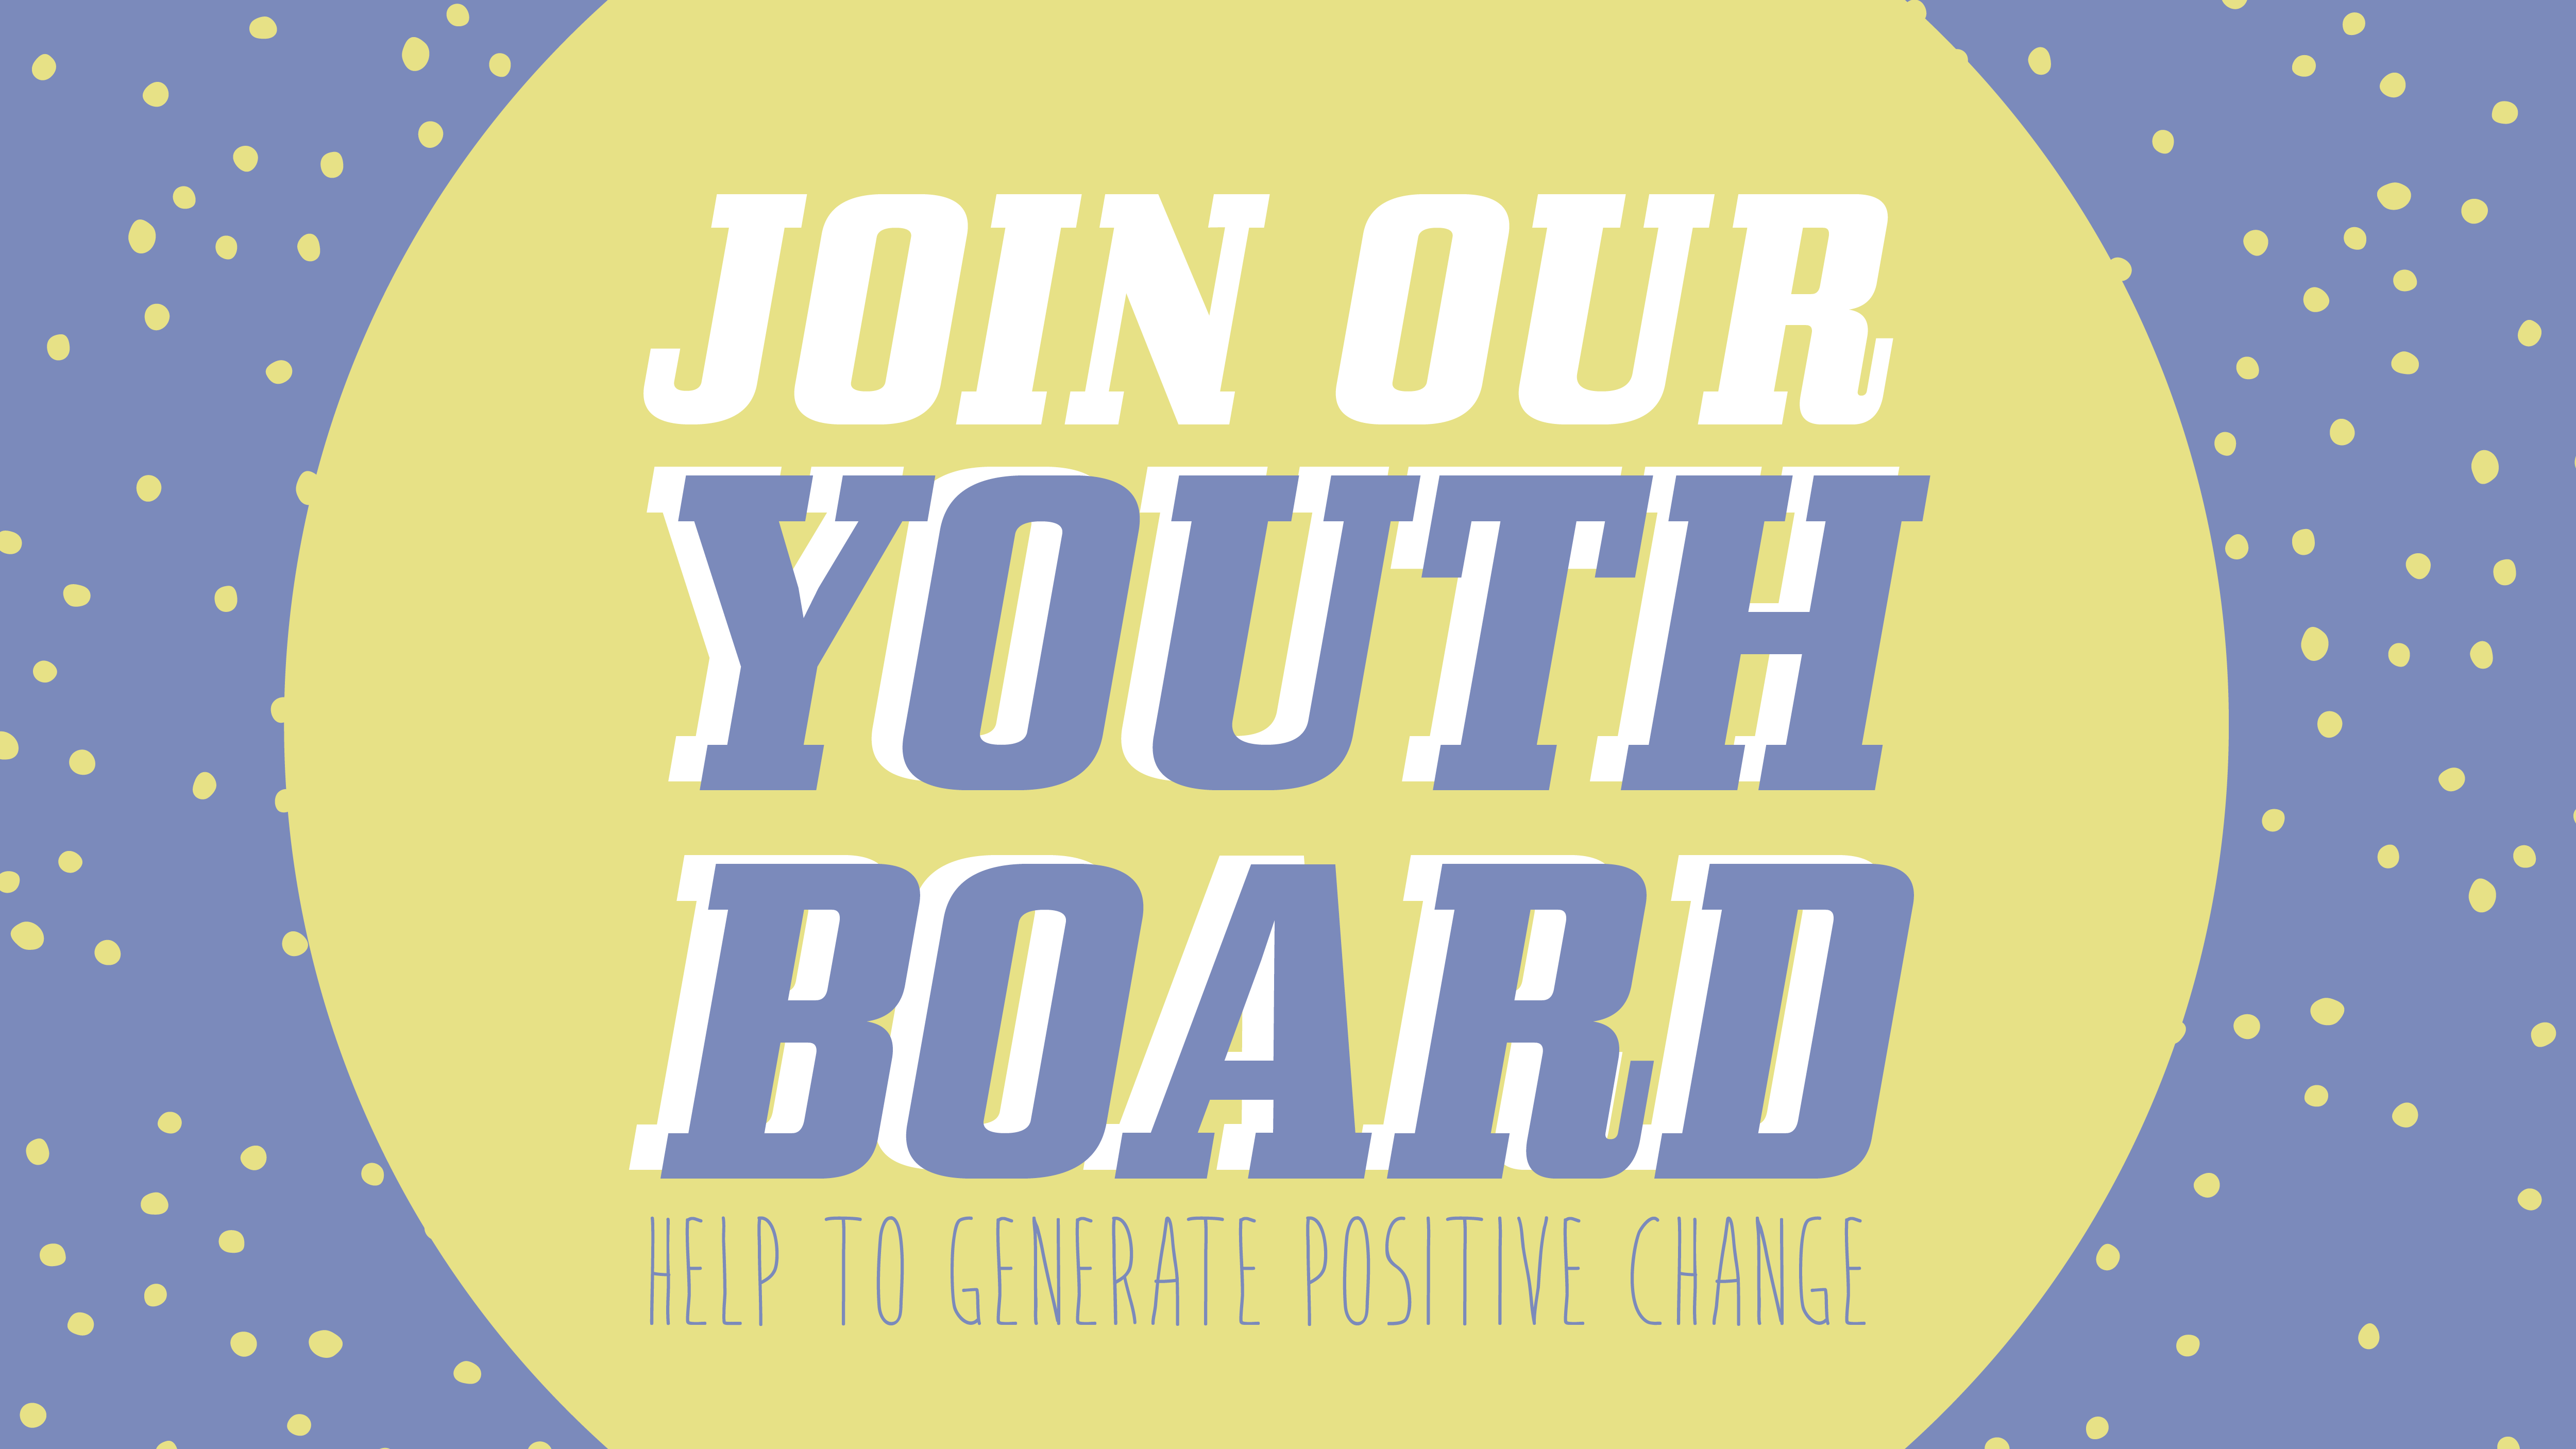 Join the Unique Voice Youth Board